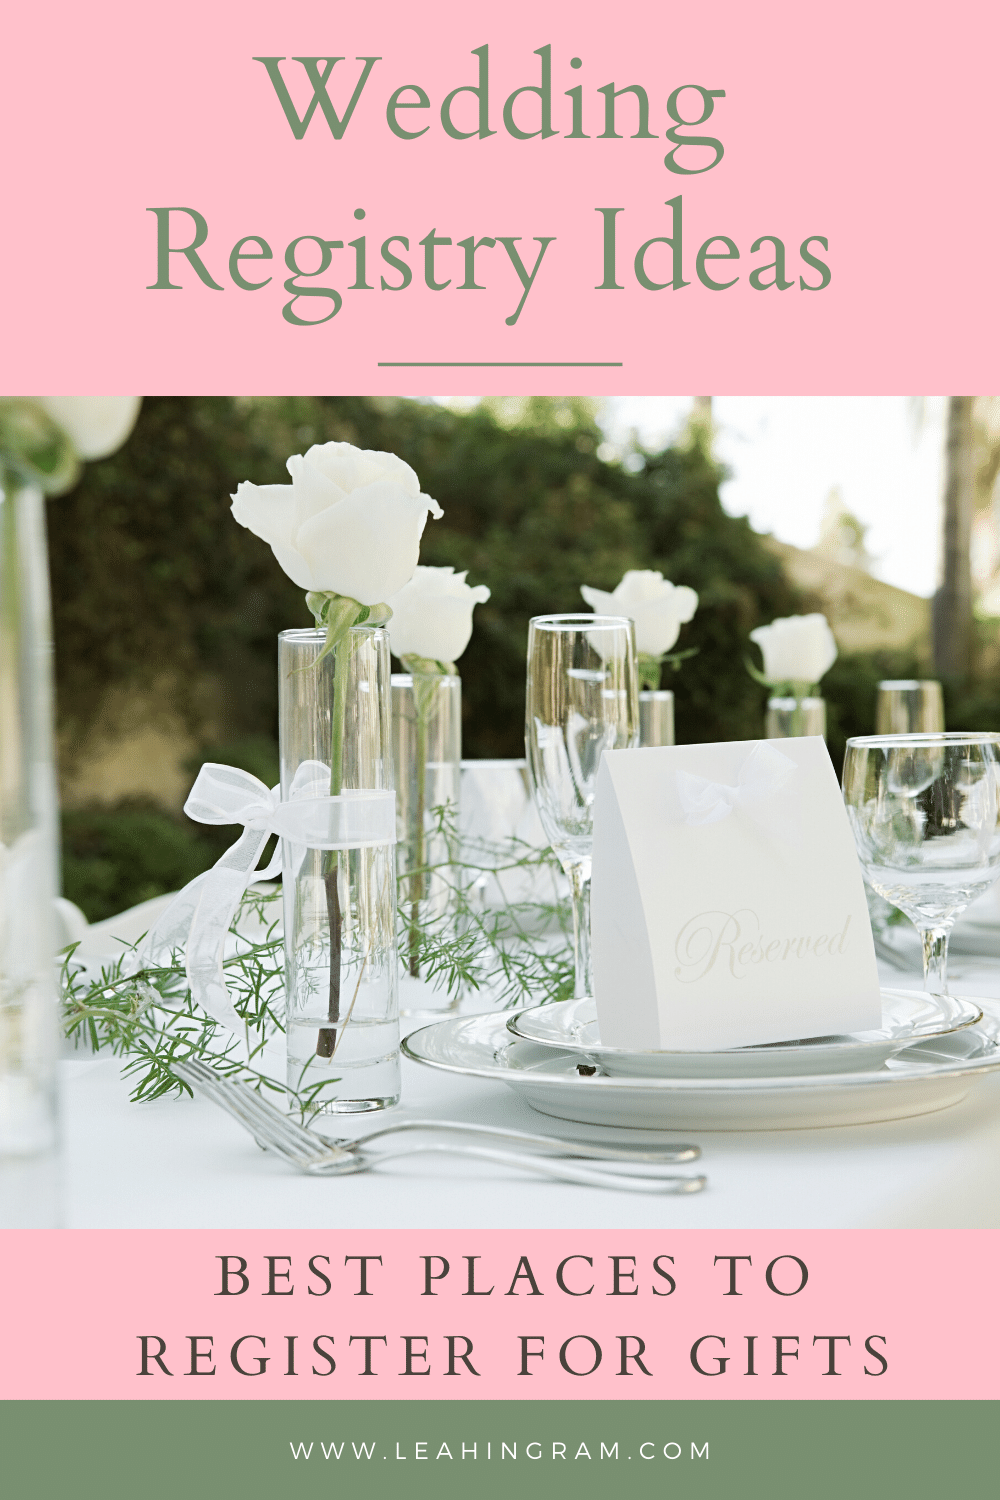 7 Best Bridal Registry Programs That Save You Money In 2020 Bridal Registry Wedding Registry Stores Places To Register For Wedding